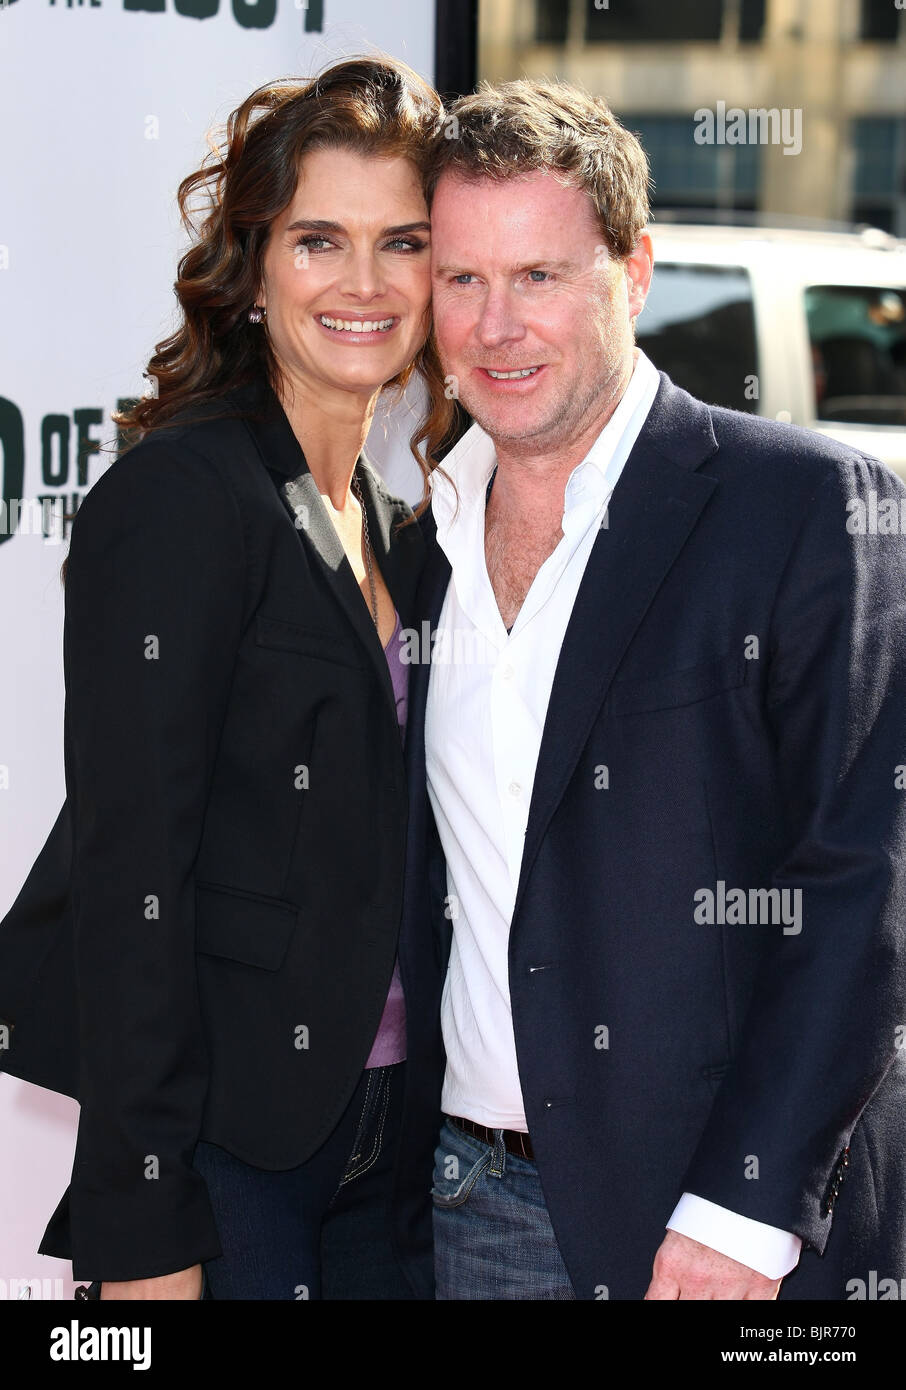 chris henchy and brooke shieldschris henchy net worth, chris henchy age, chris henchy young, chris henchy photo, chris henchy bio, chris henchy funny or die, chris henchy brooke shields wedding, chris henchy imdb, chris henchy movies, chris henchy wiki, chris henchy height, chris henchy will ferrell, chris henchy twitter, chris henchy pics, chris henchy net worth 2016, chris henchy images, chris henchy and brooke shields, chris henchy daughters, chris henchy wife, chris henchy 2017